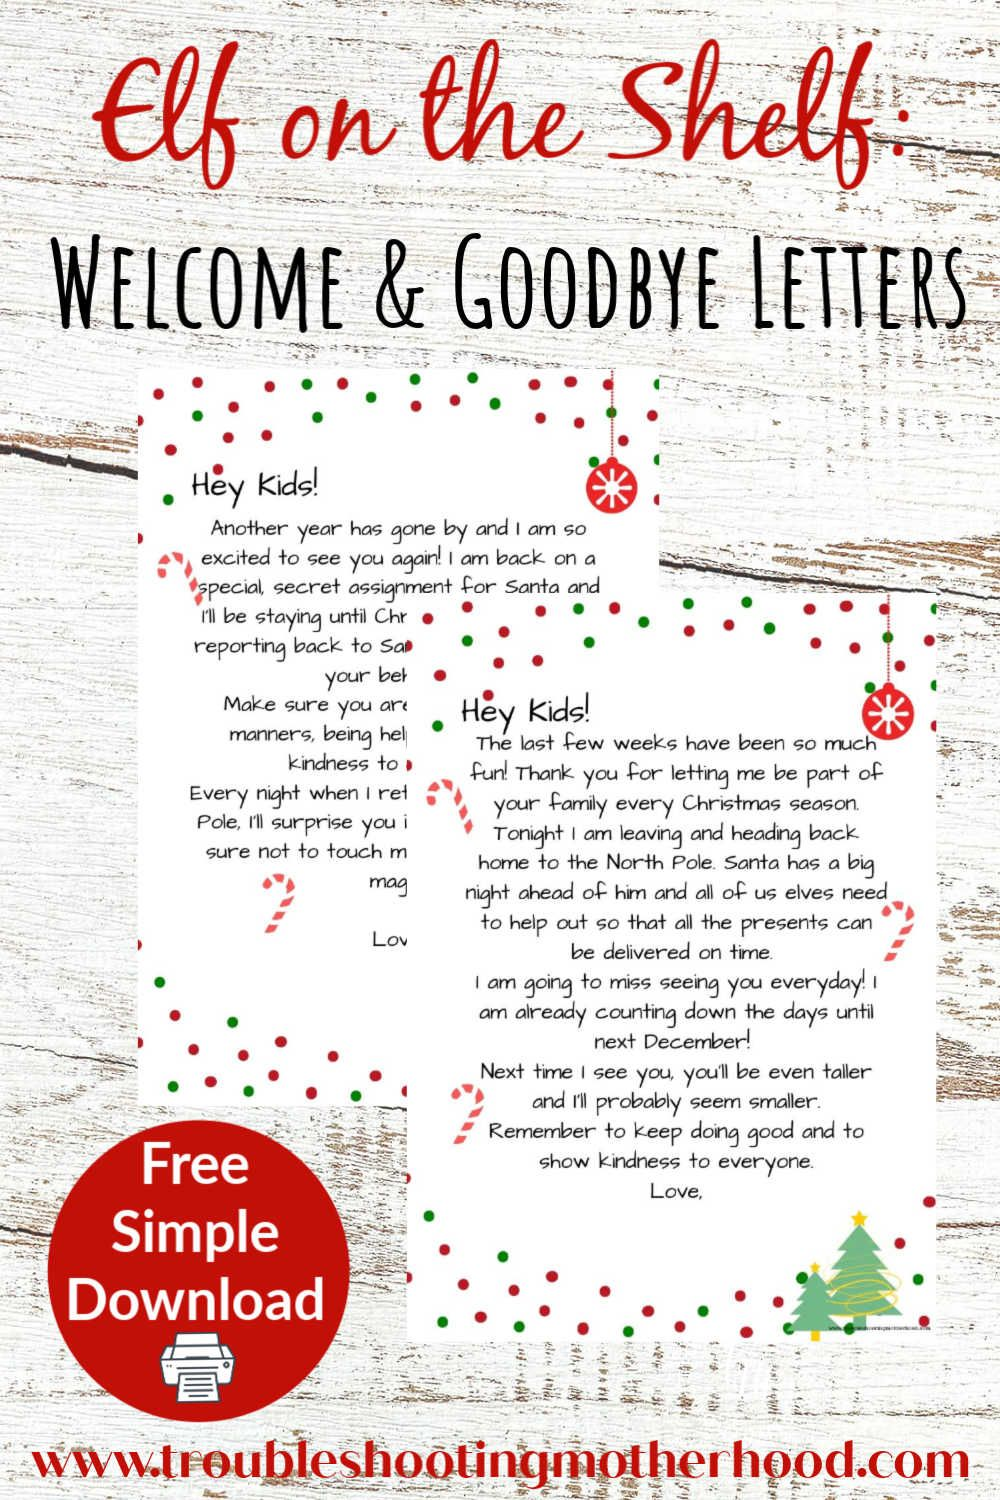 Elf on The Shelf Welcome & Goodbye Letters Free Printable